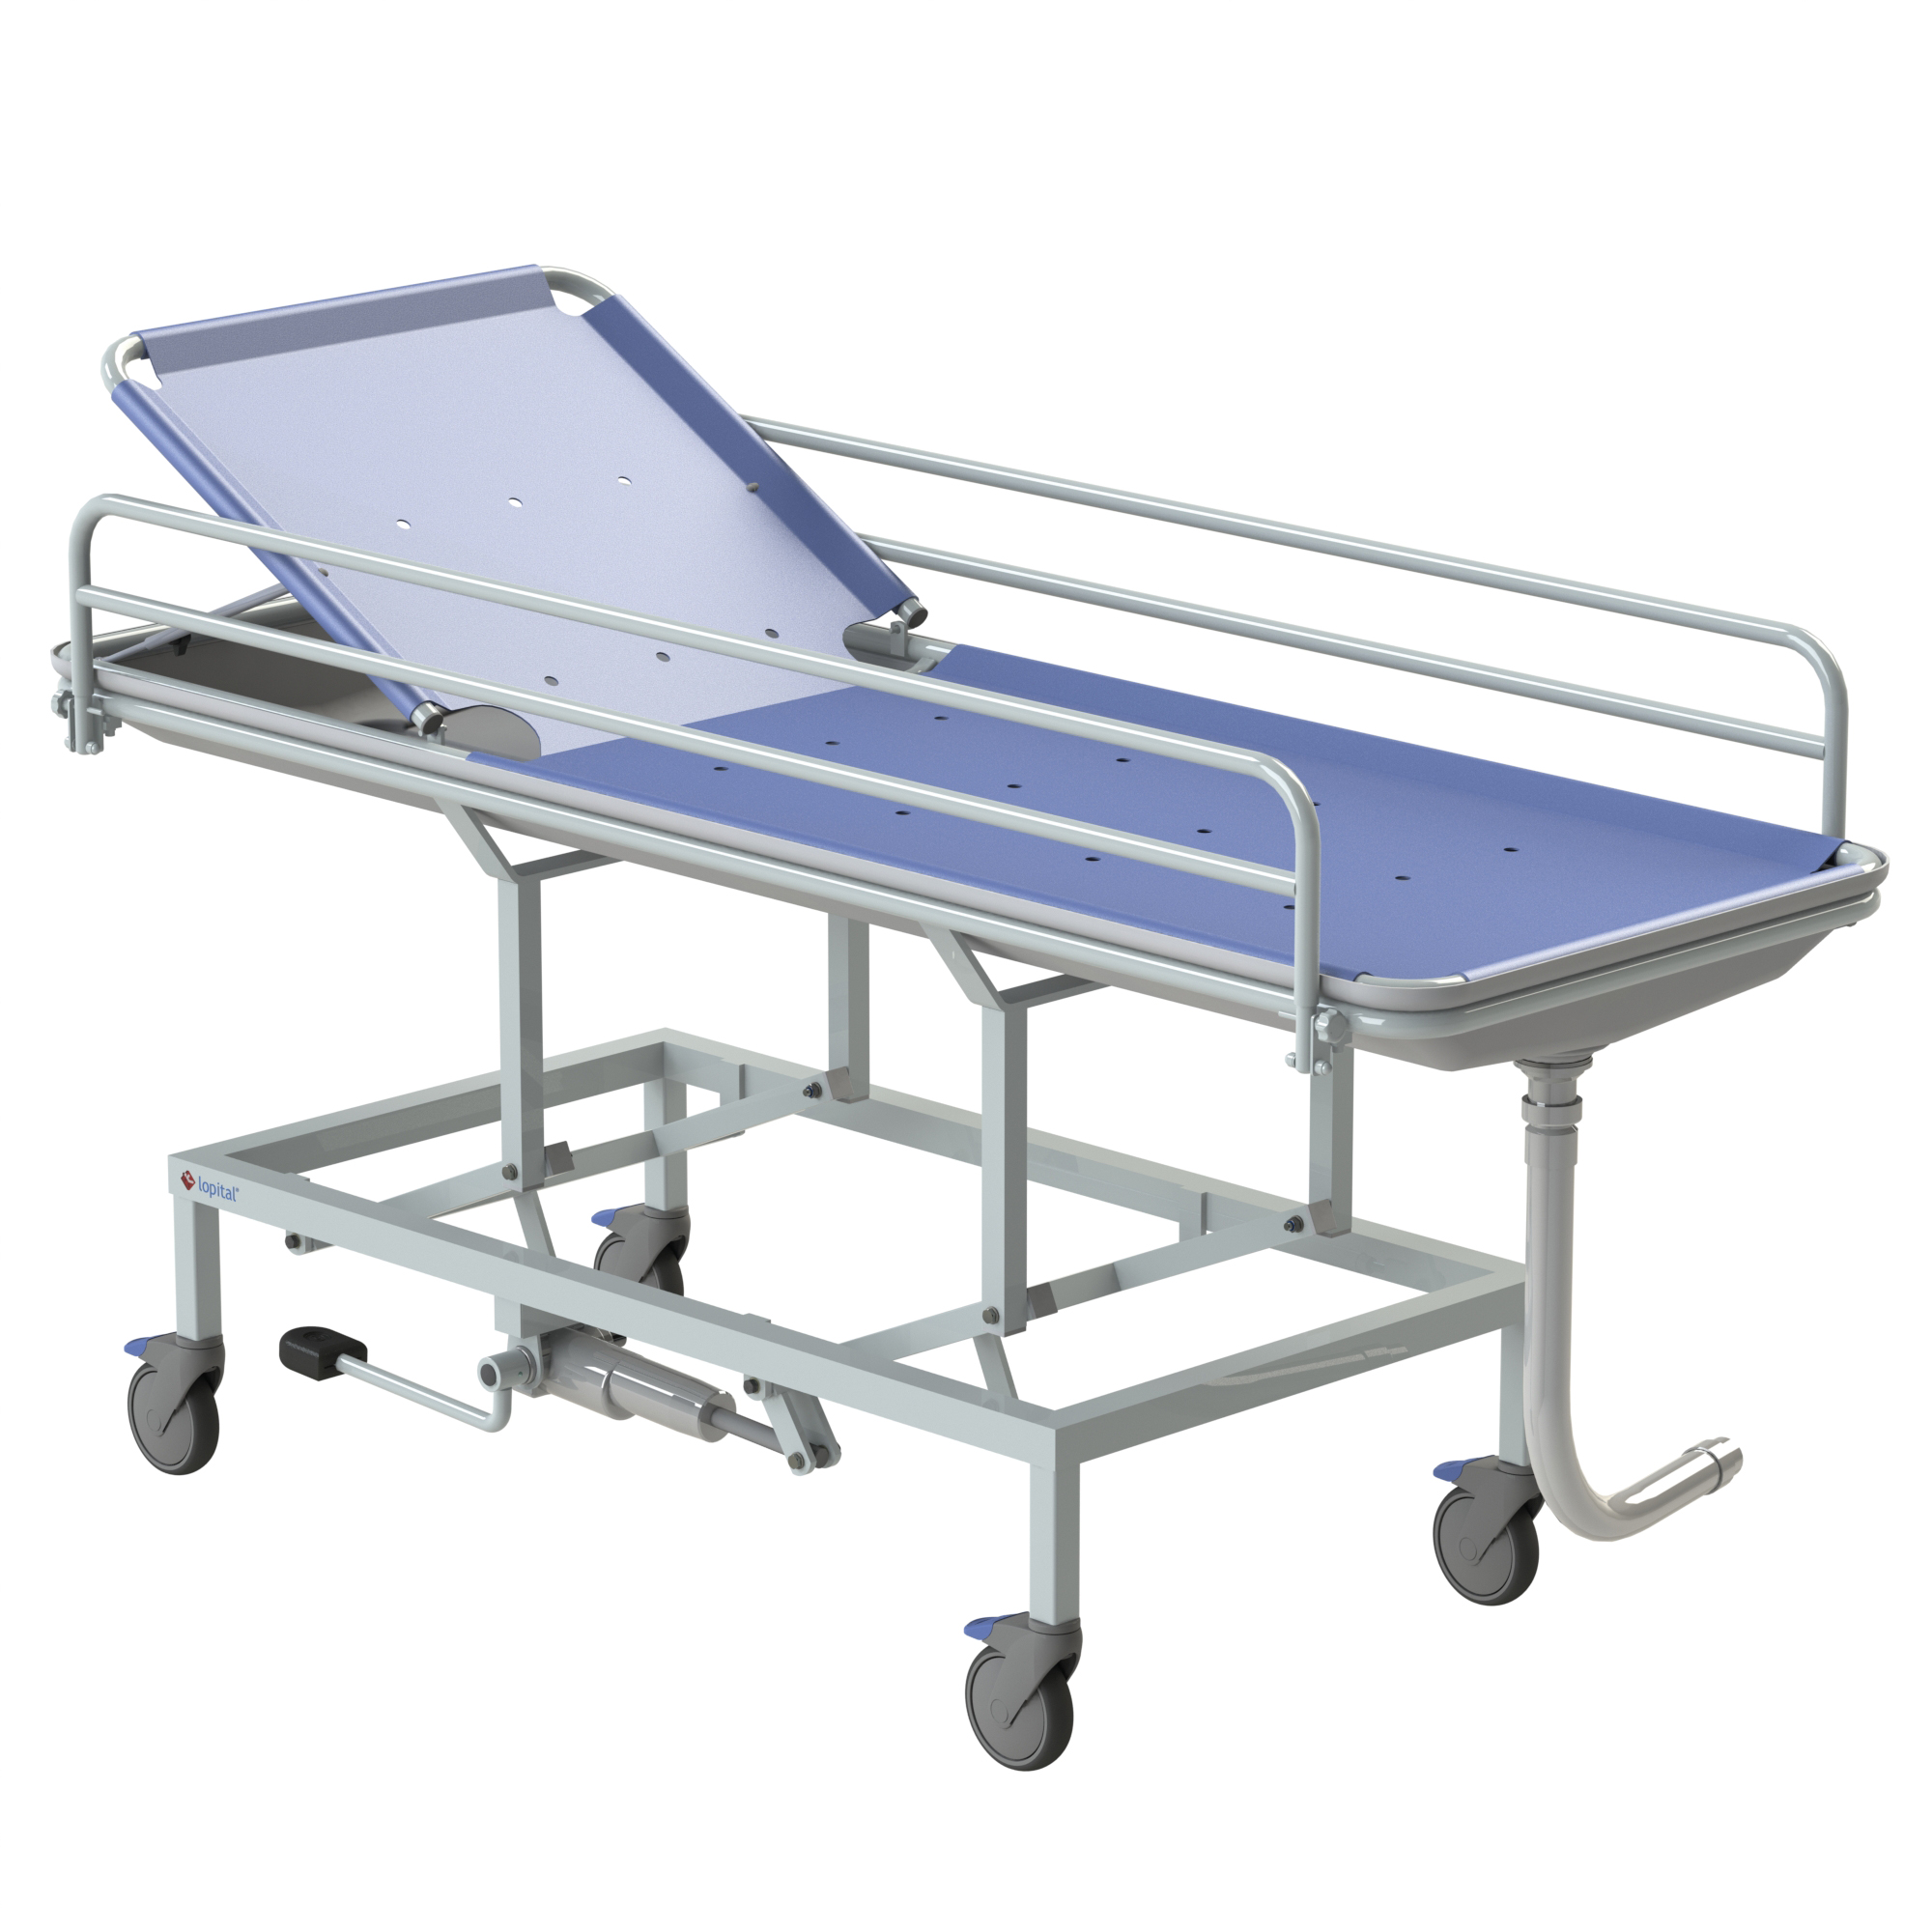 europe shower bathing trolley pacific howard stretchers cares wright main